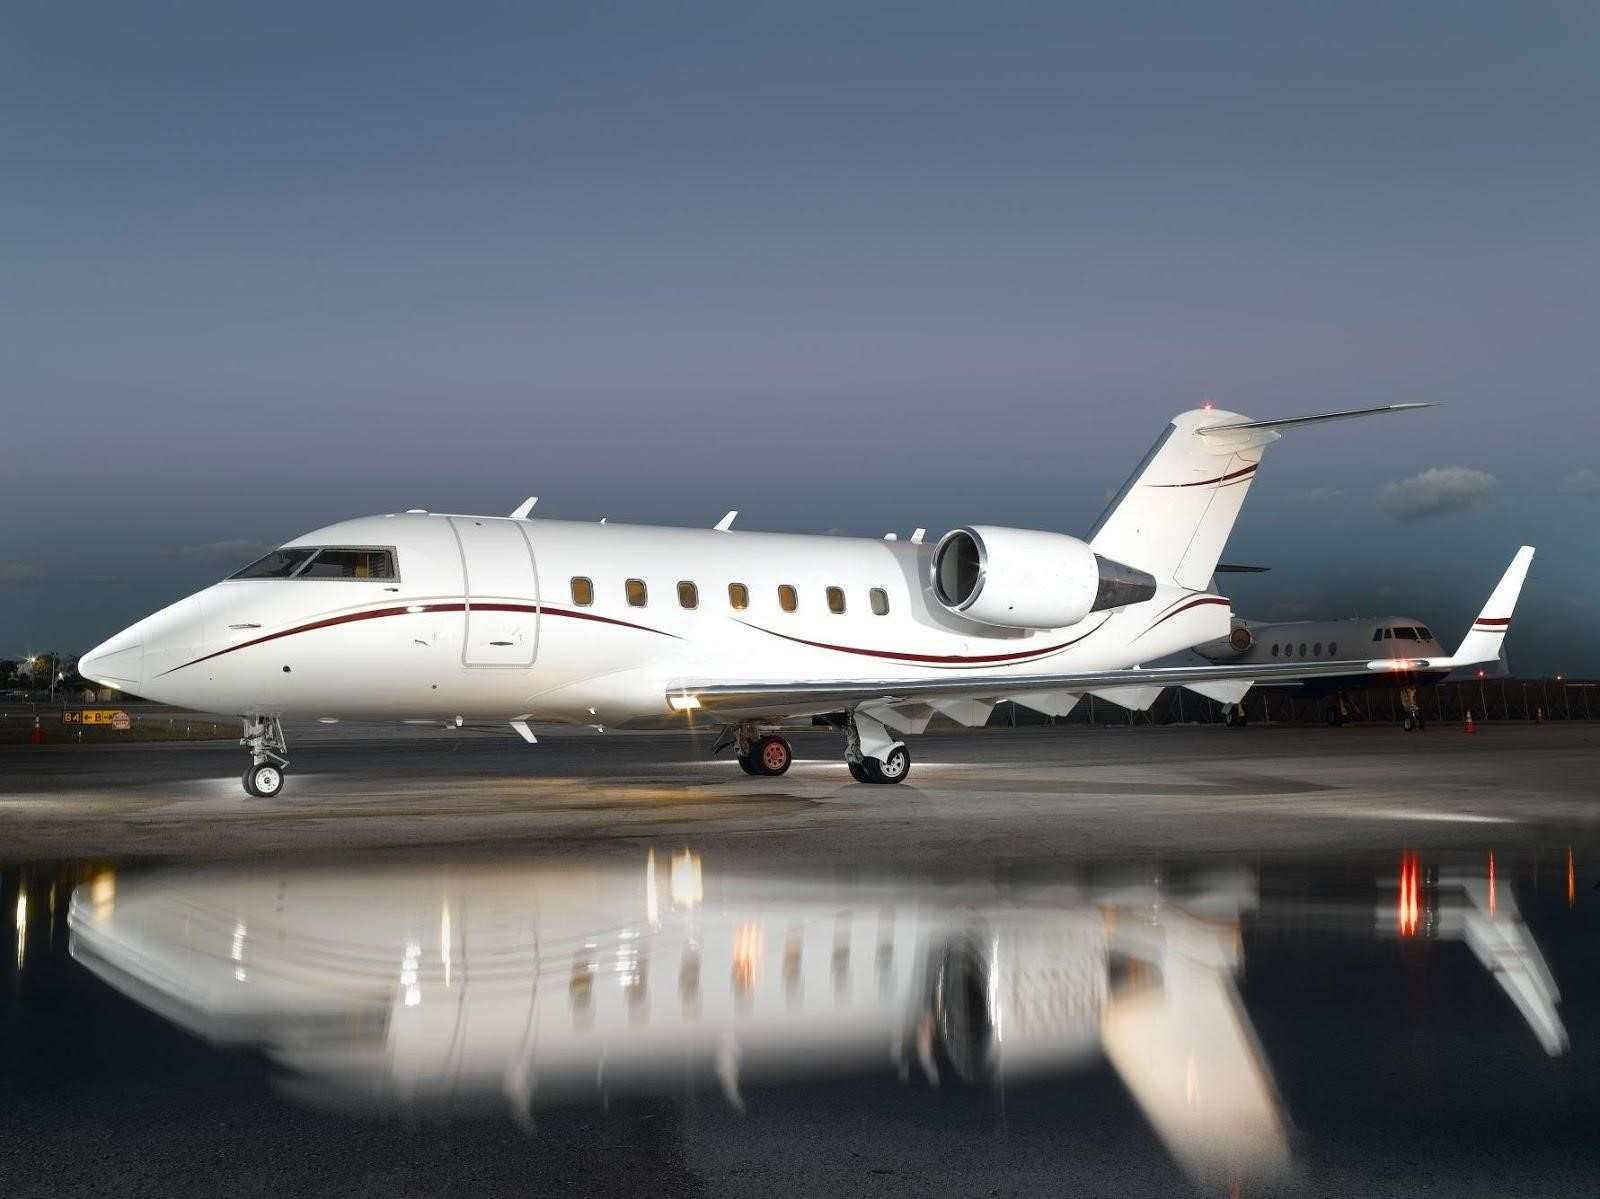 Flying In Style Helps Your Business Succeed